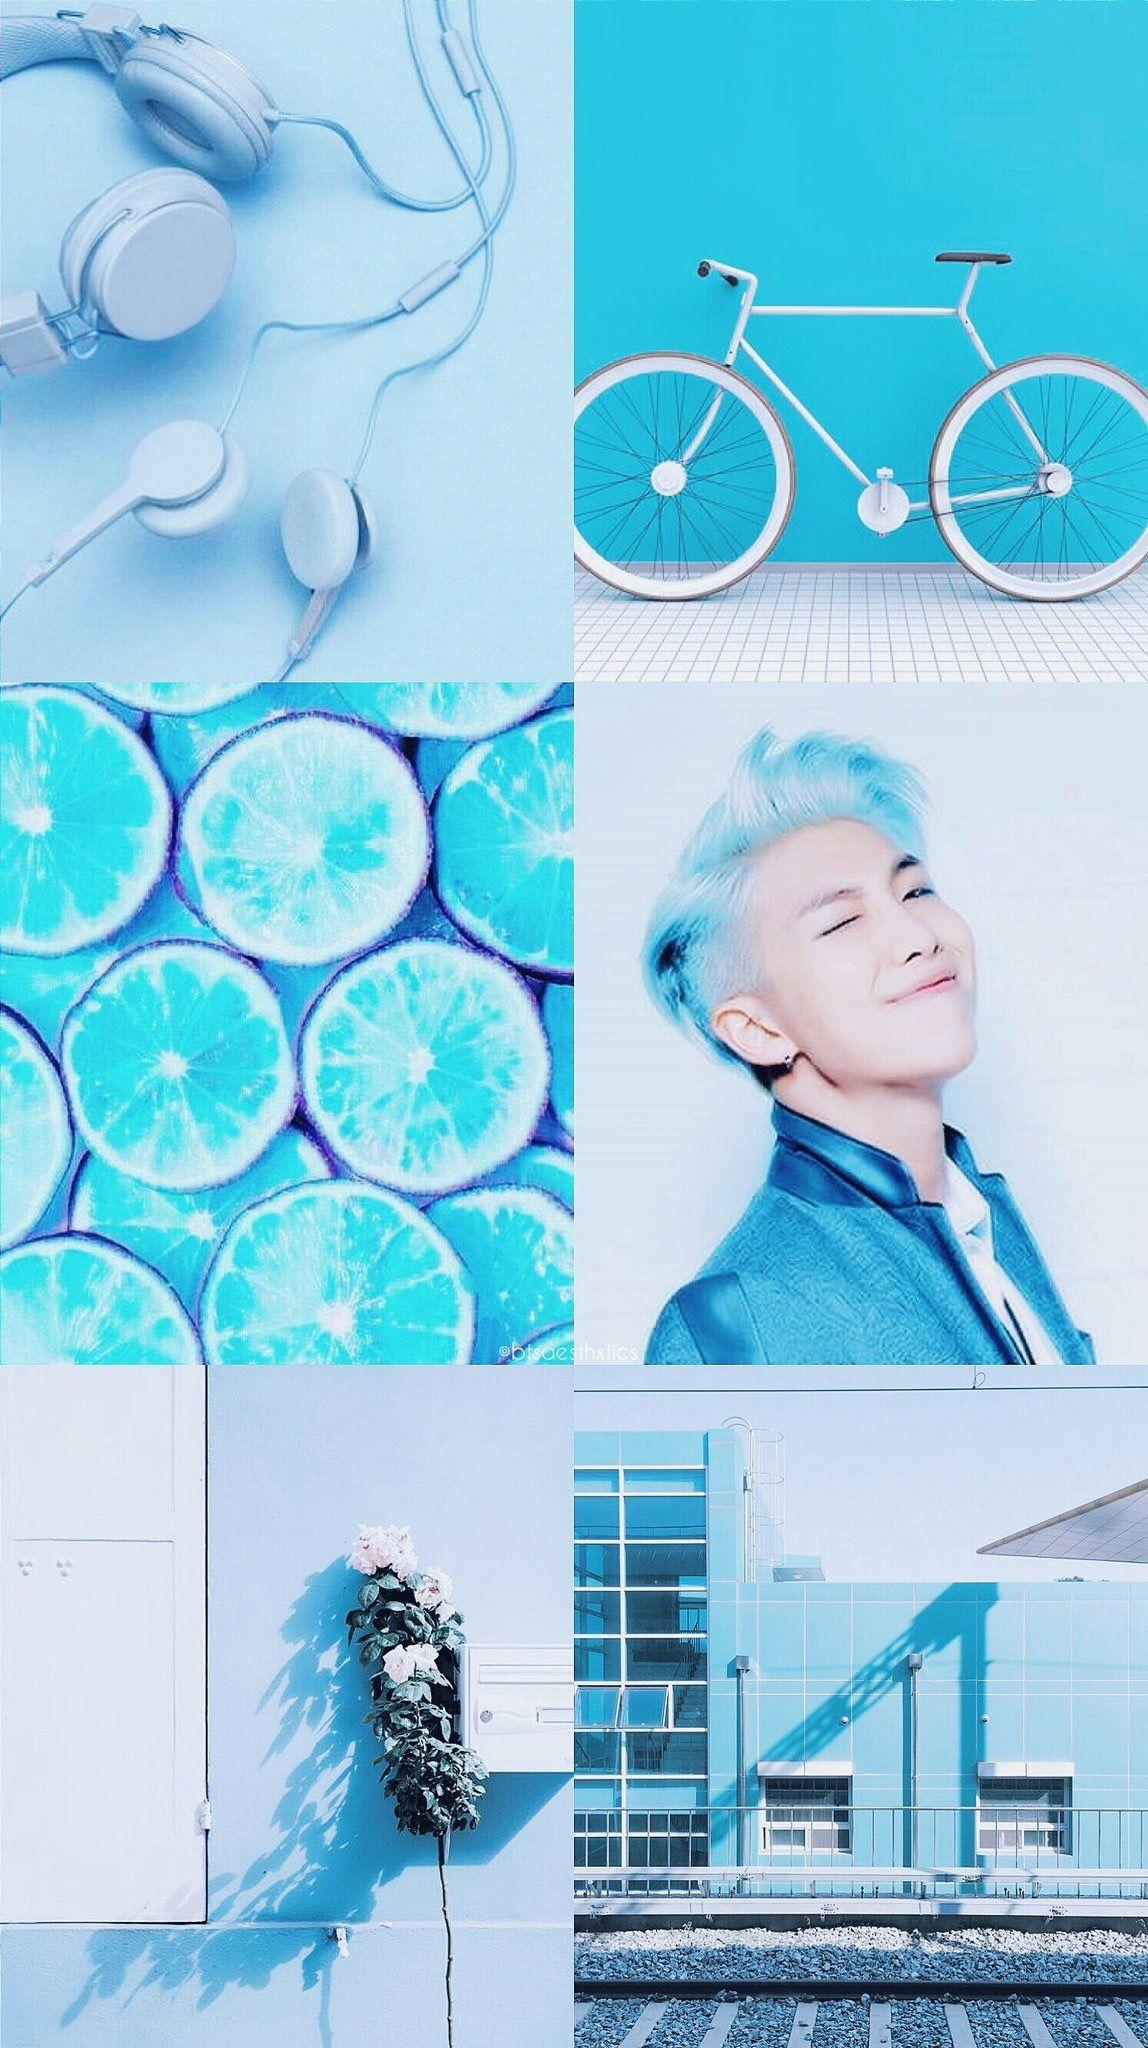 BTS Aesthetic Wallpapers - Wallpaper Cave